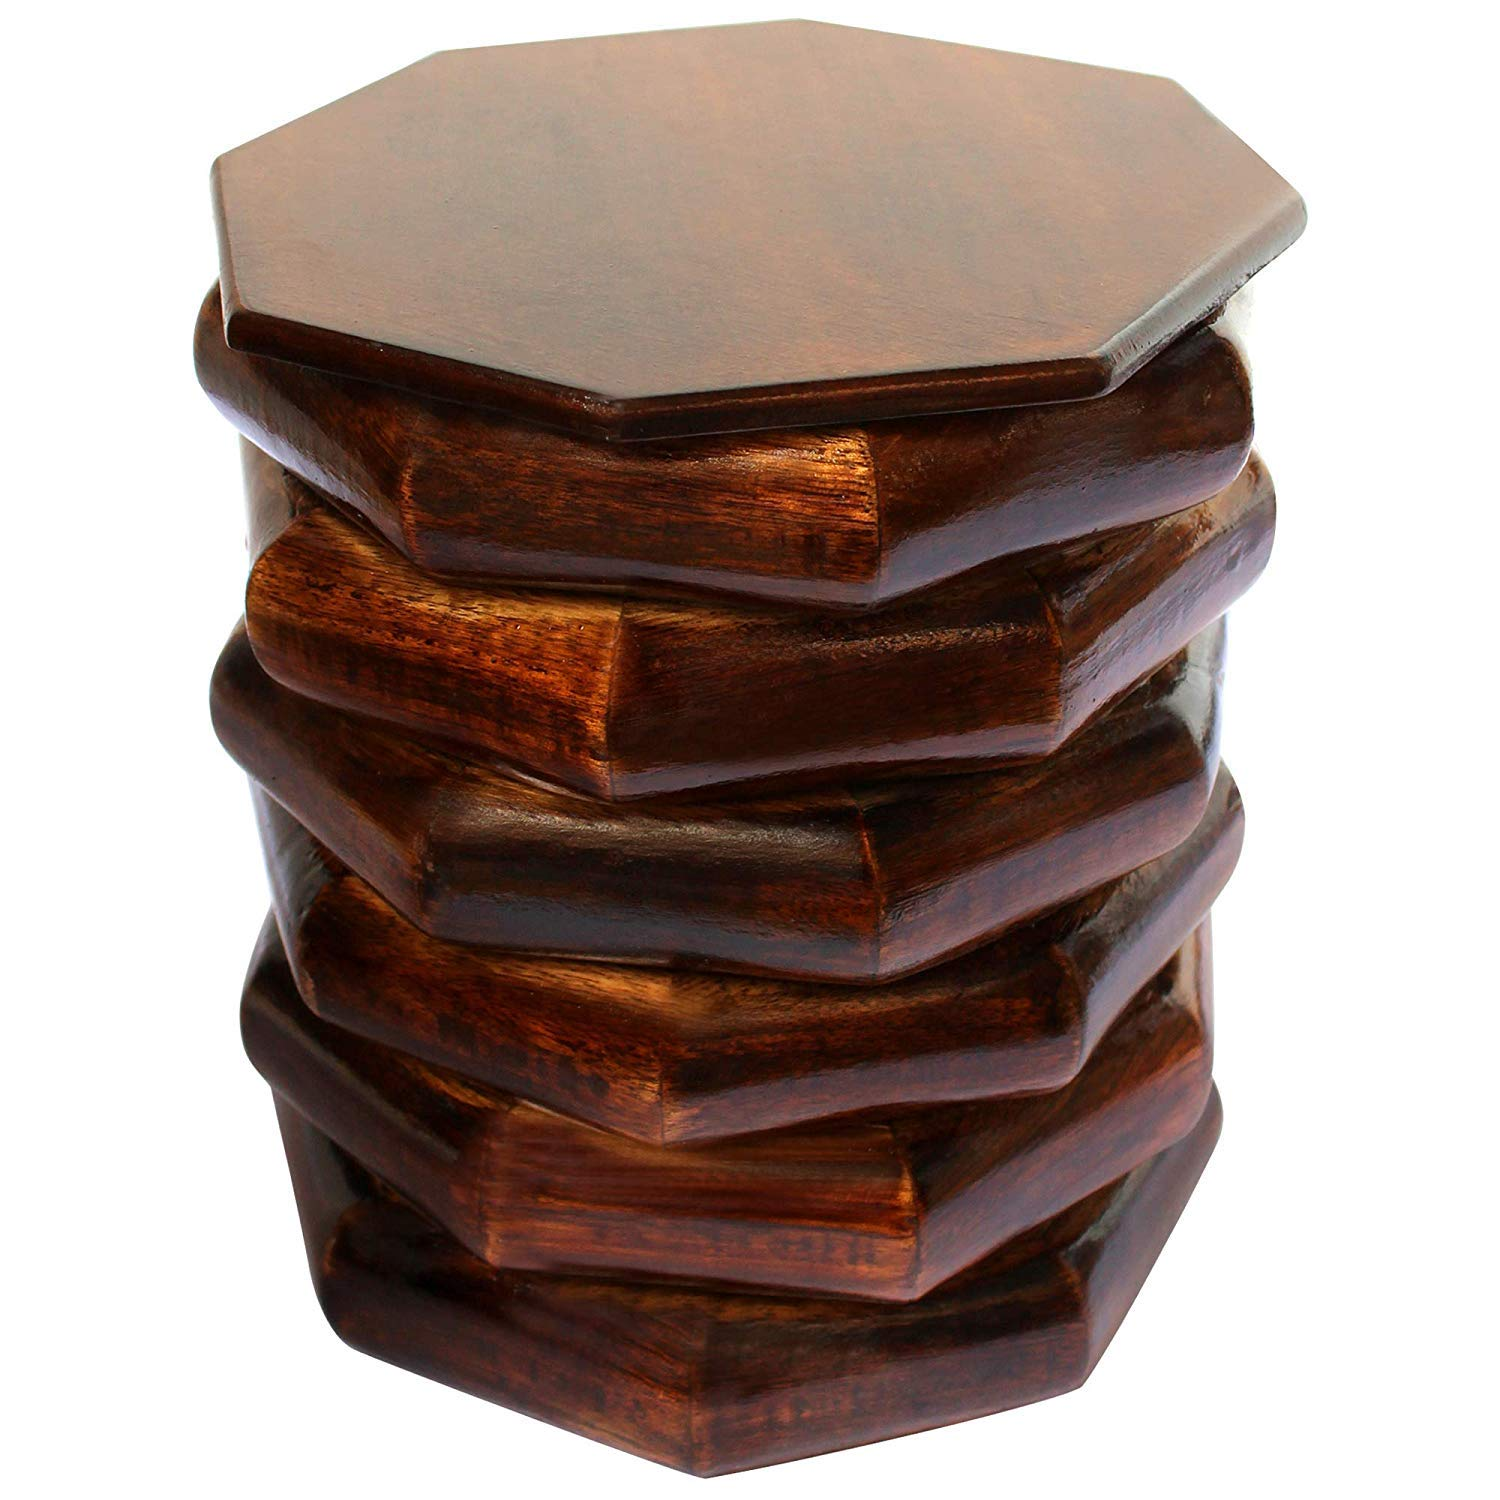 Wooden Stool Online India 2020